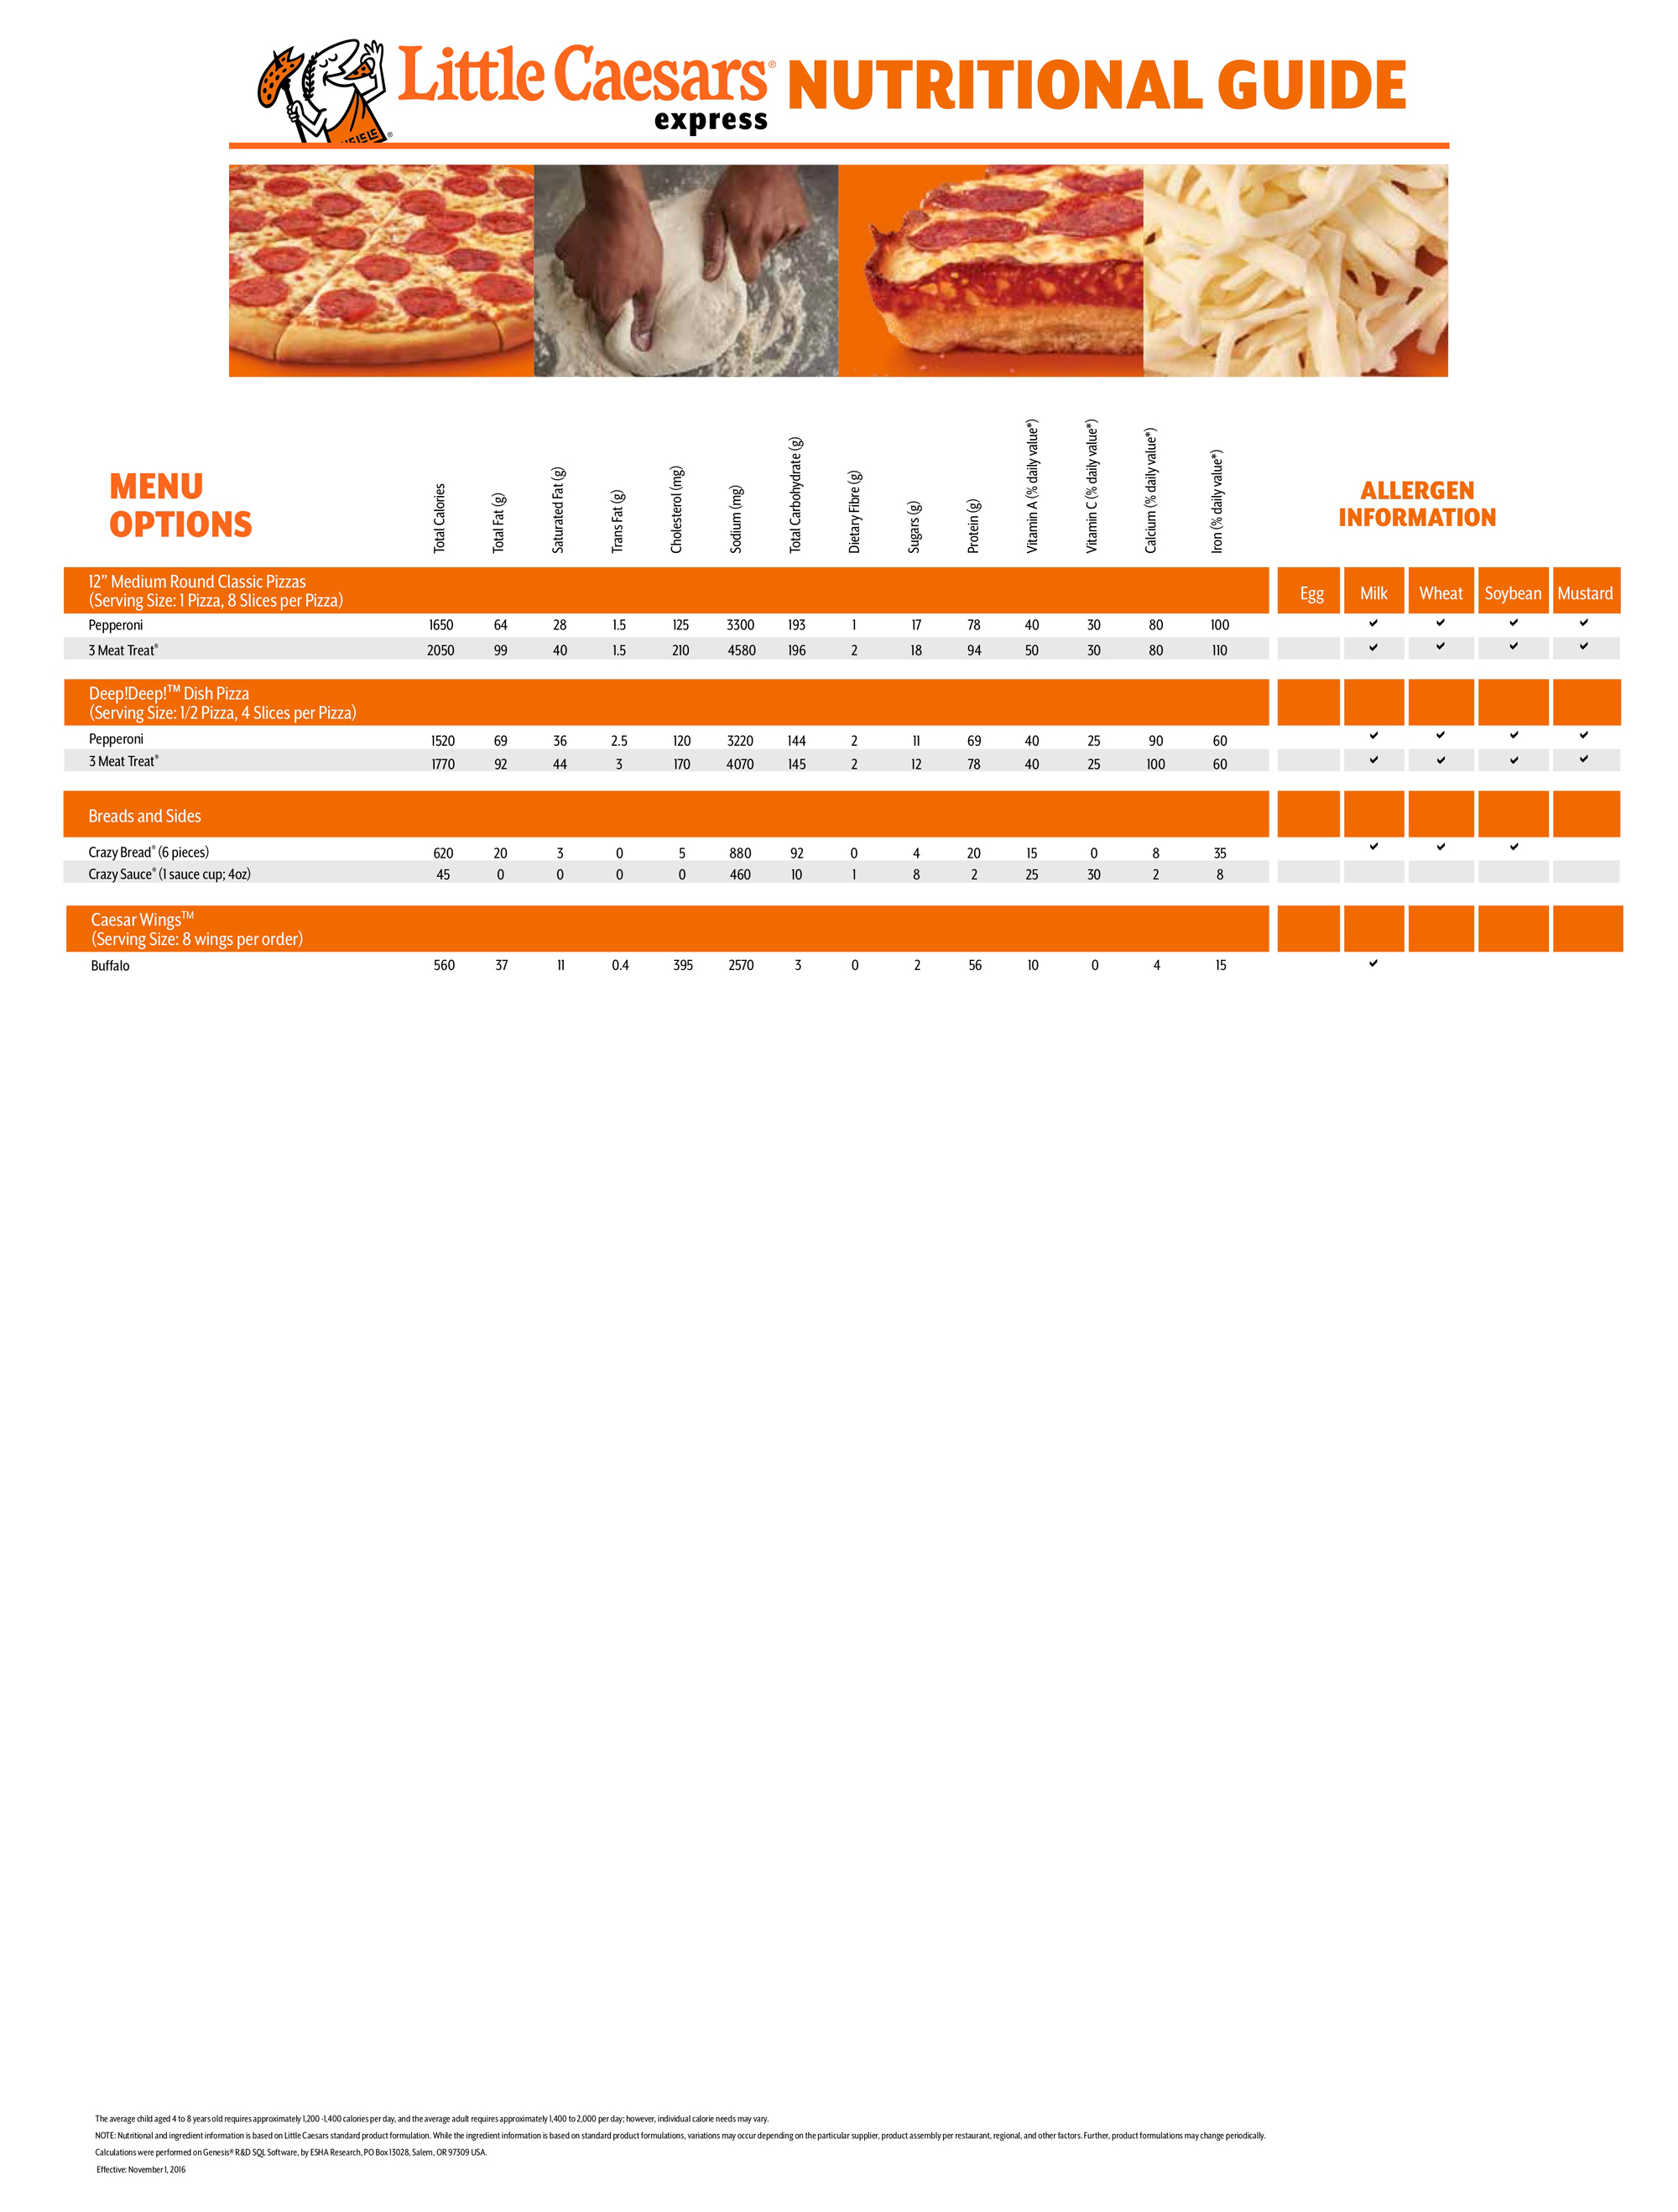 Little Caesars Nutrition Guide Page 2